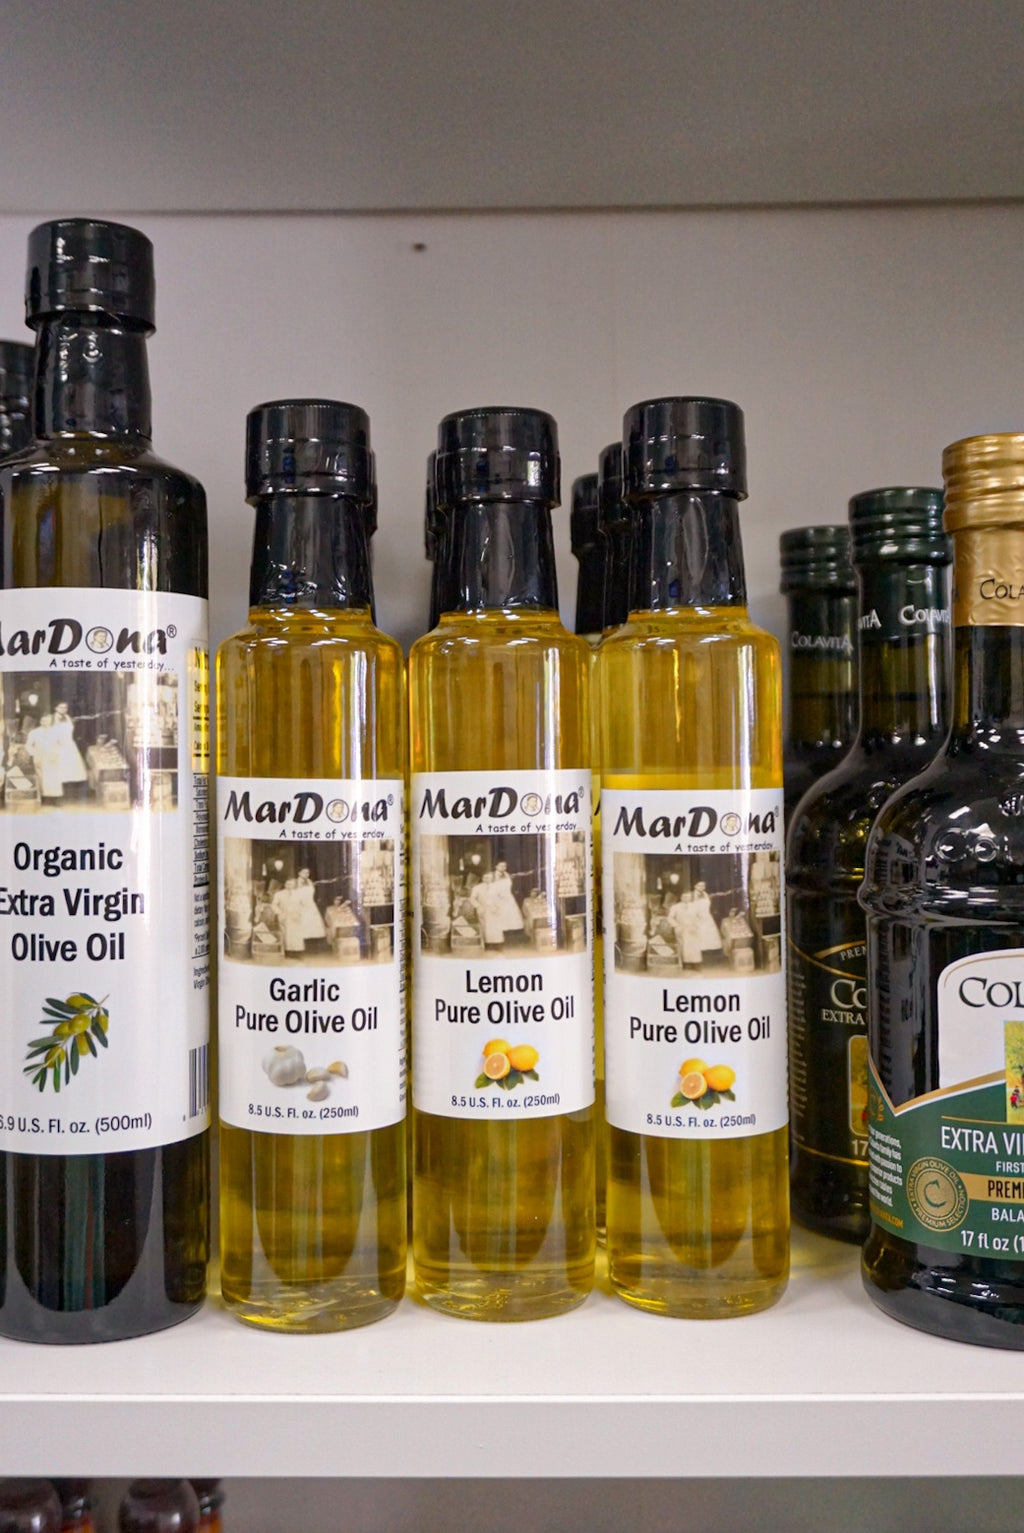 Mardona Garlic Olive Oil - Westport